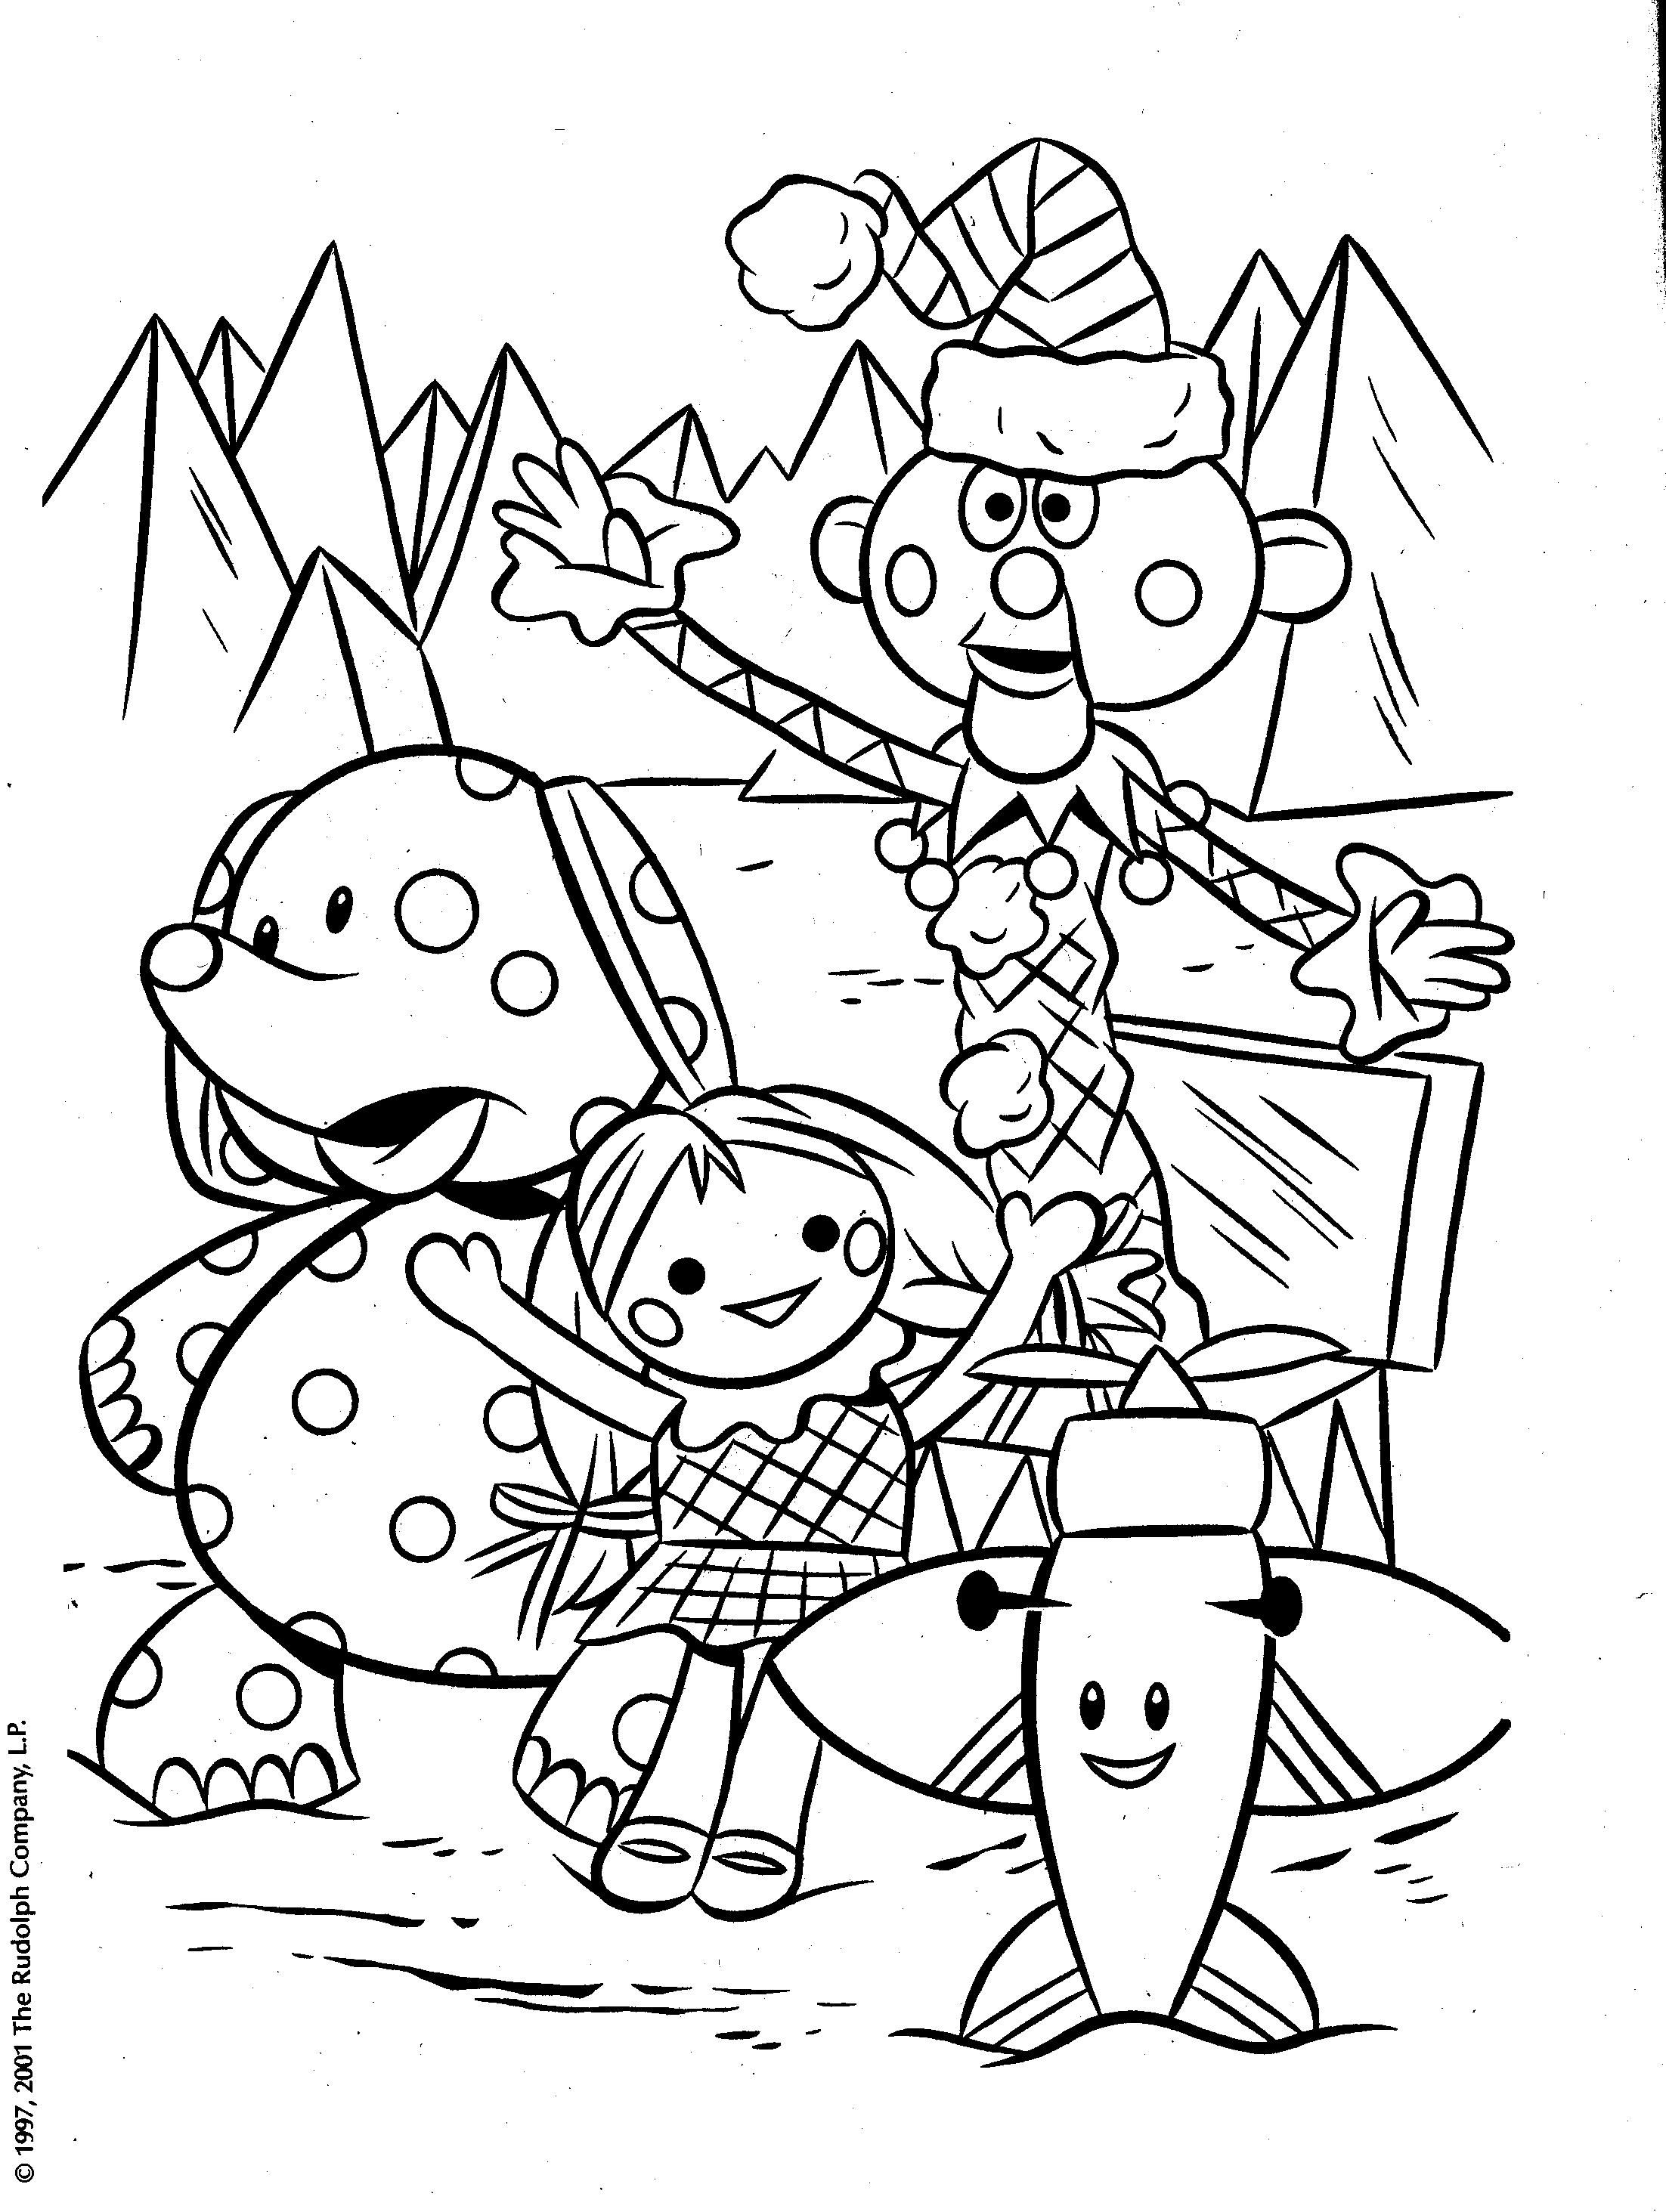 From A Rudolph Coloring Book Of The Misfit Toys